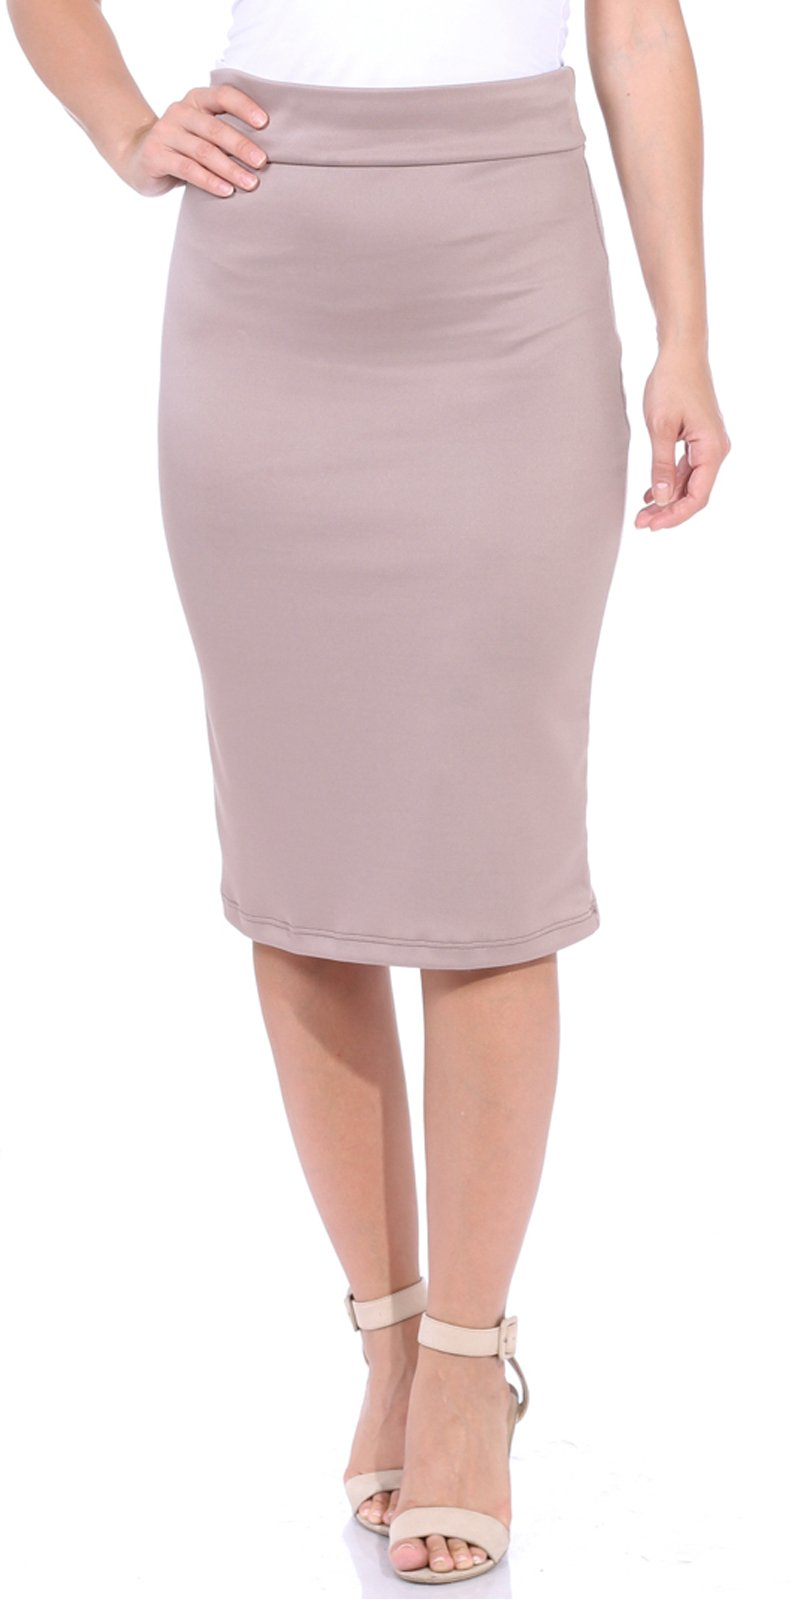 Popana Women's High Waist Knee Length Stretch Pencil Skirt - Ladies Shaping Midi Skirt For Work or Office - Made In USA Large Toffee